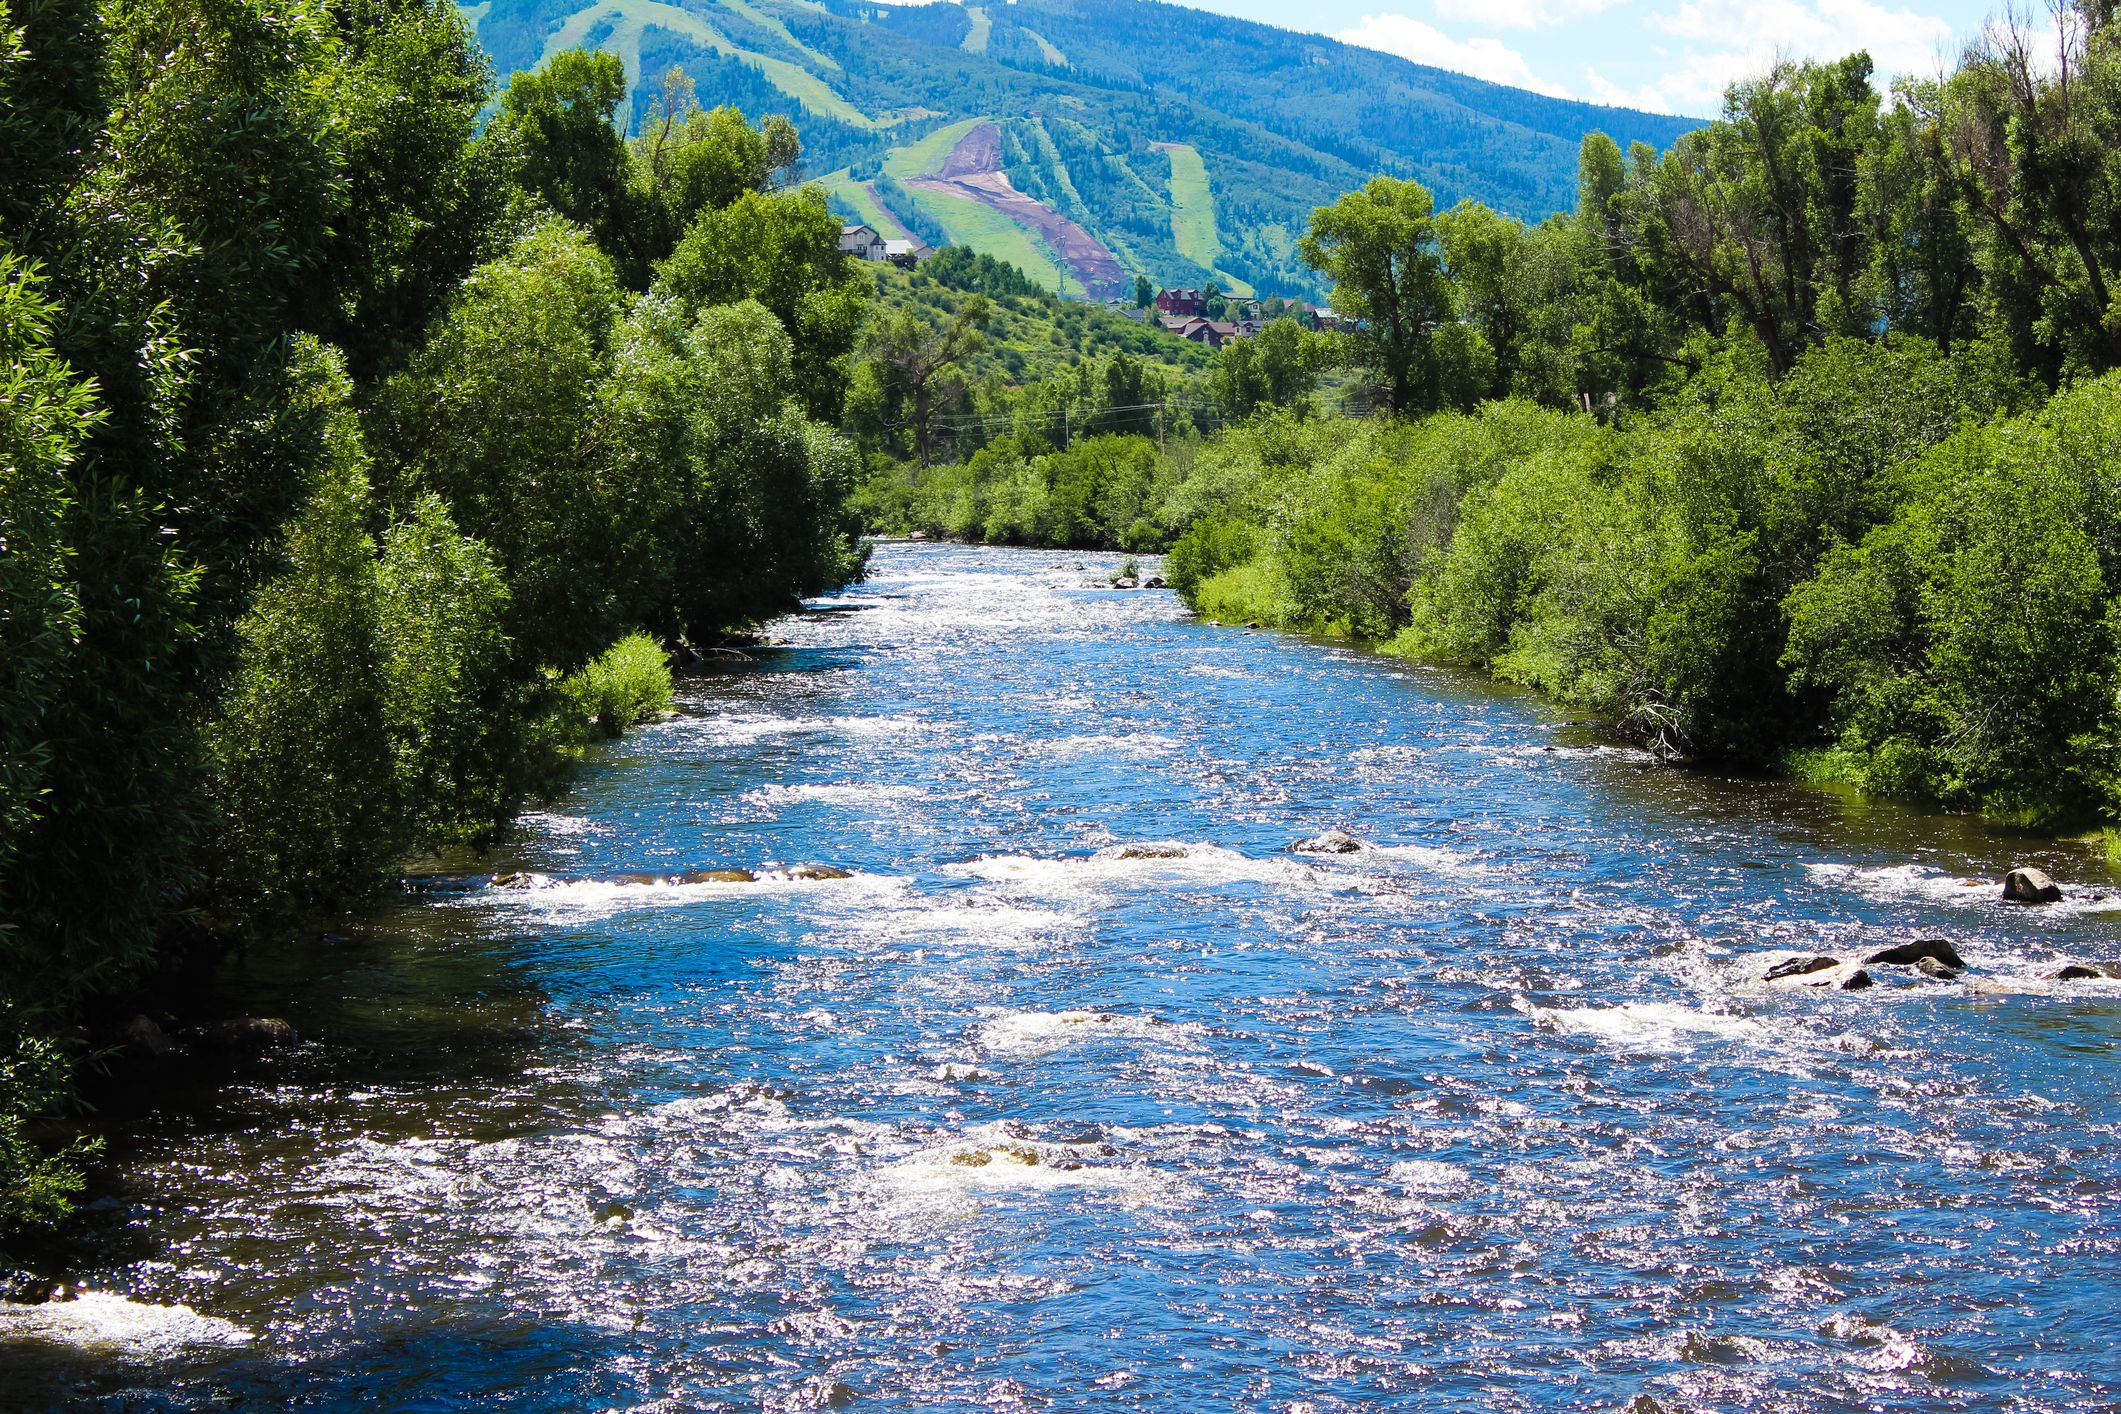 The Yampa River in Steamboat